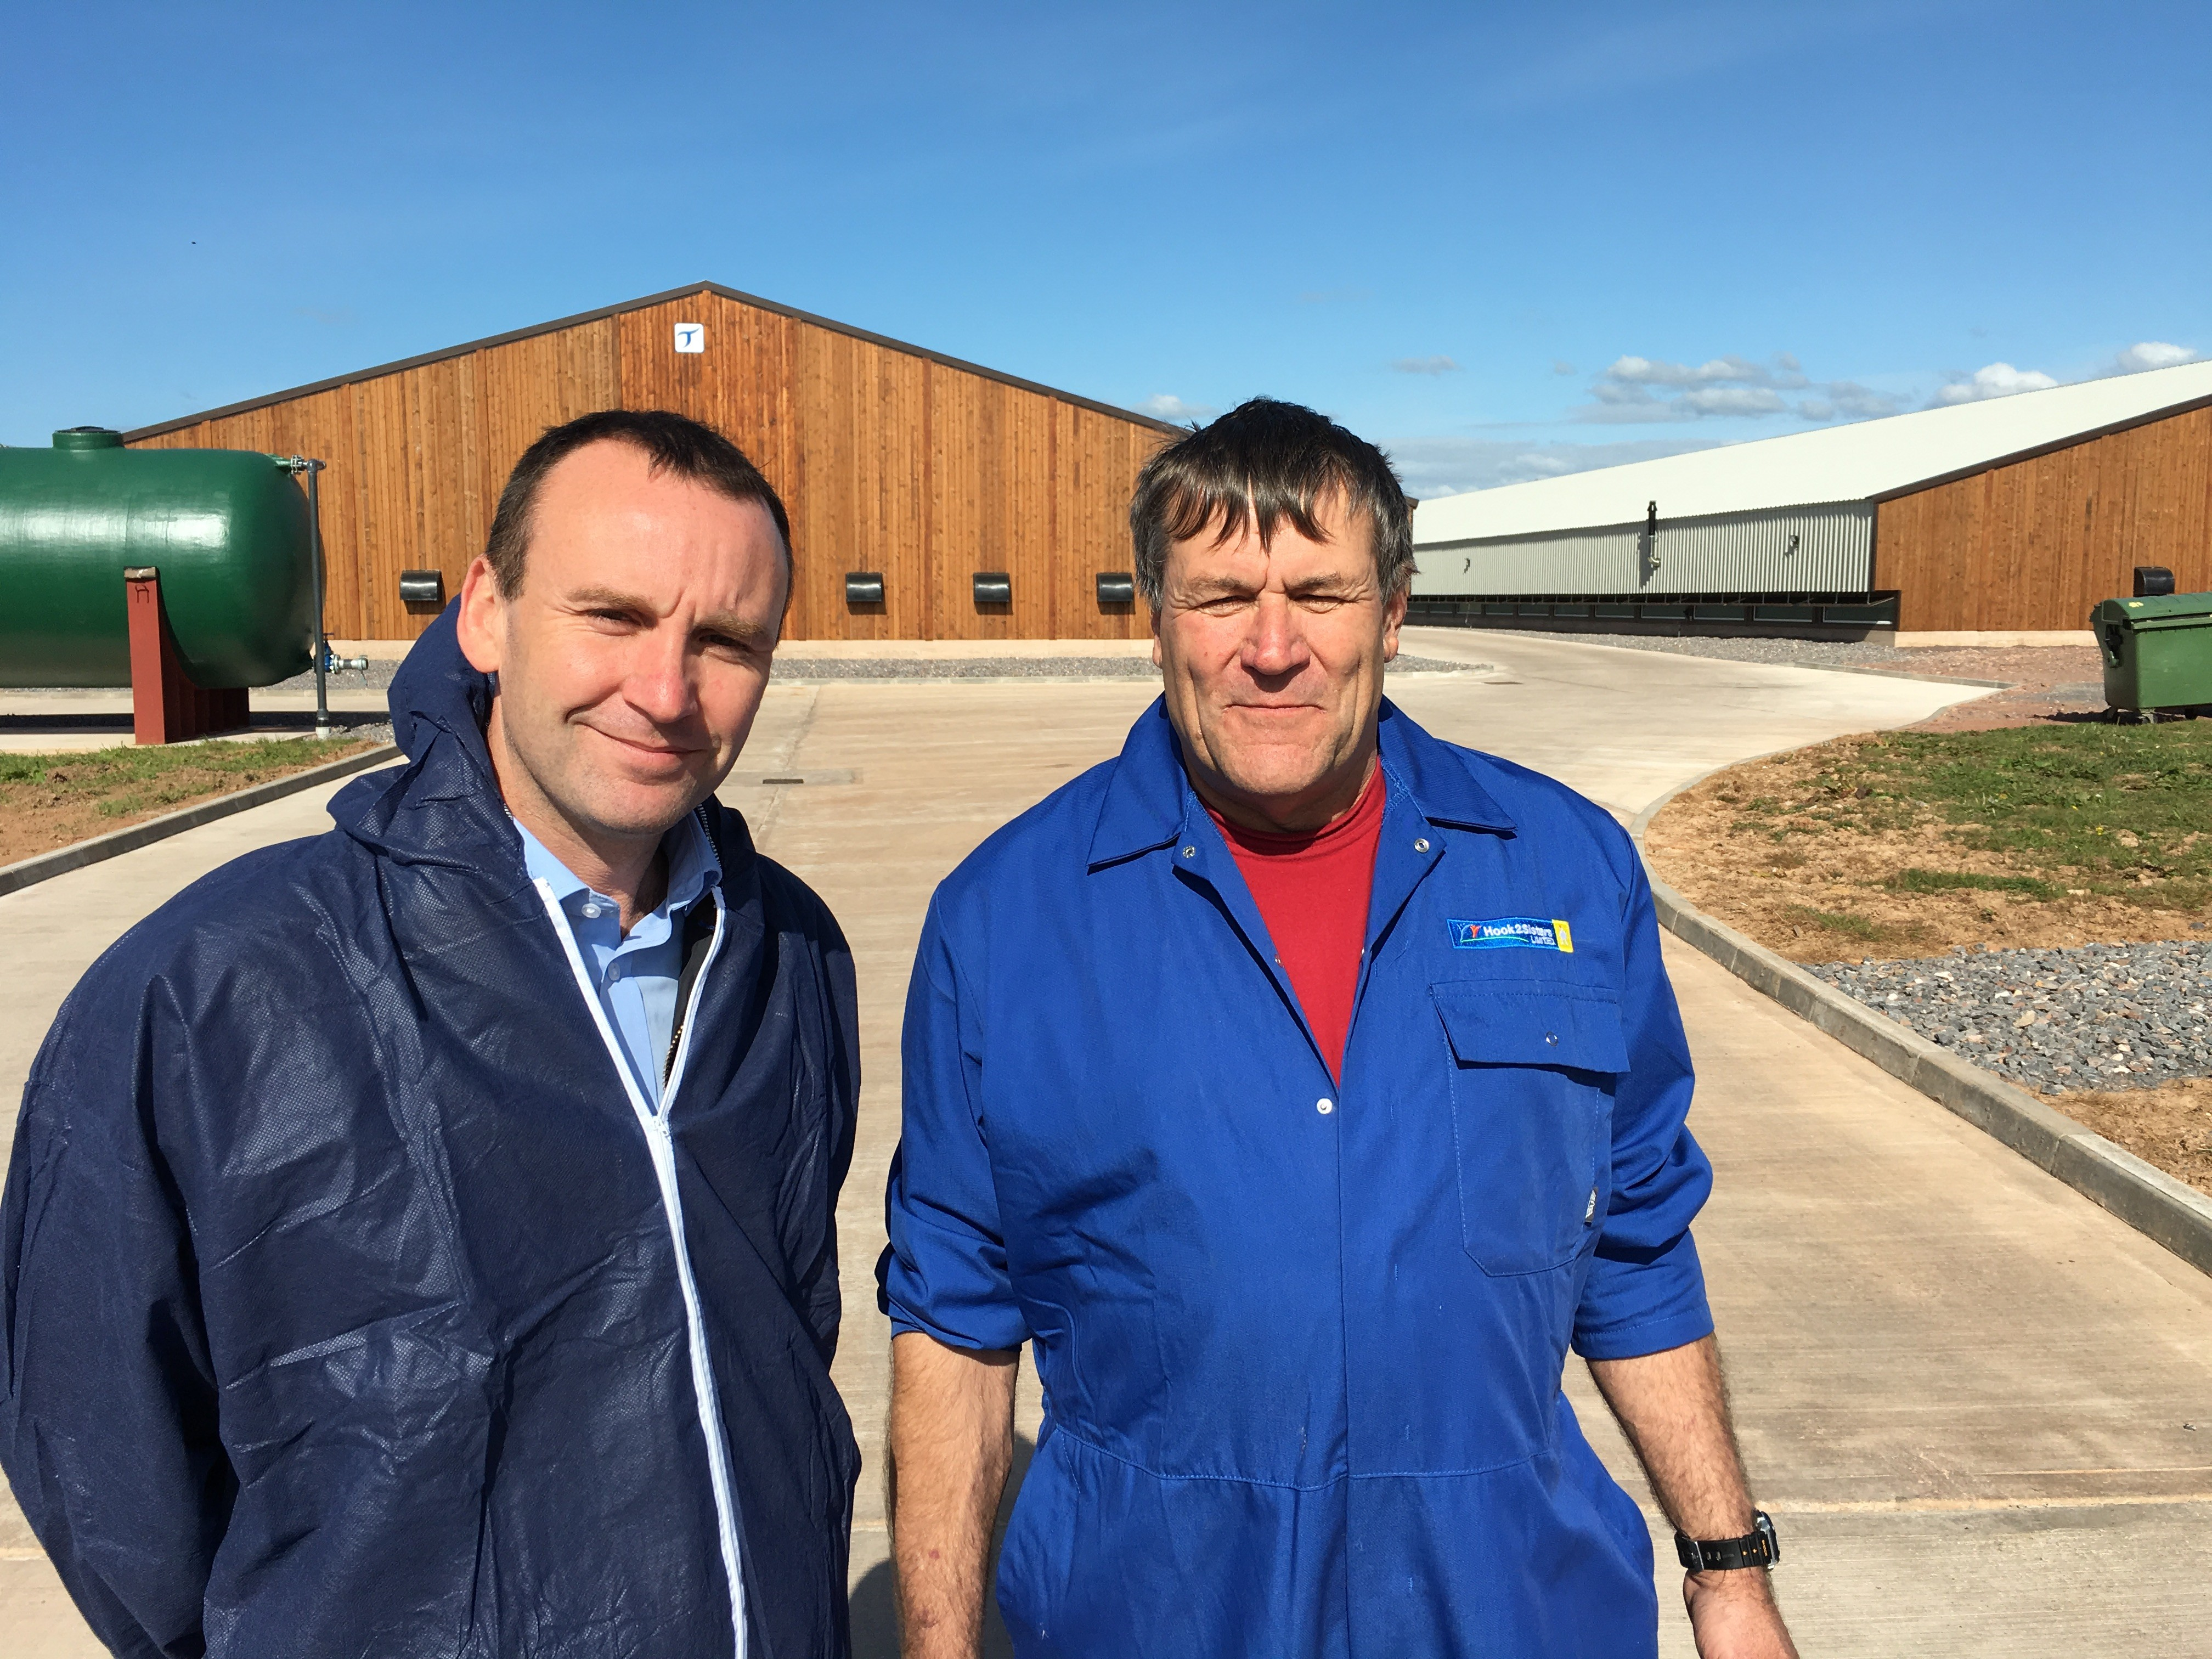 2 Sisters general manager for the south west, with Swanhams farm manager Victor Pratt.